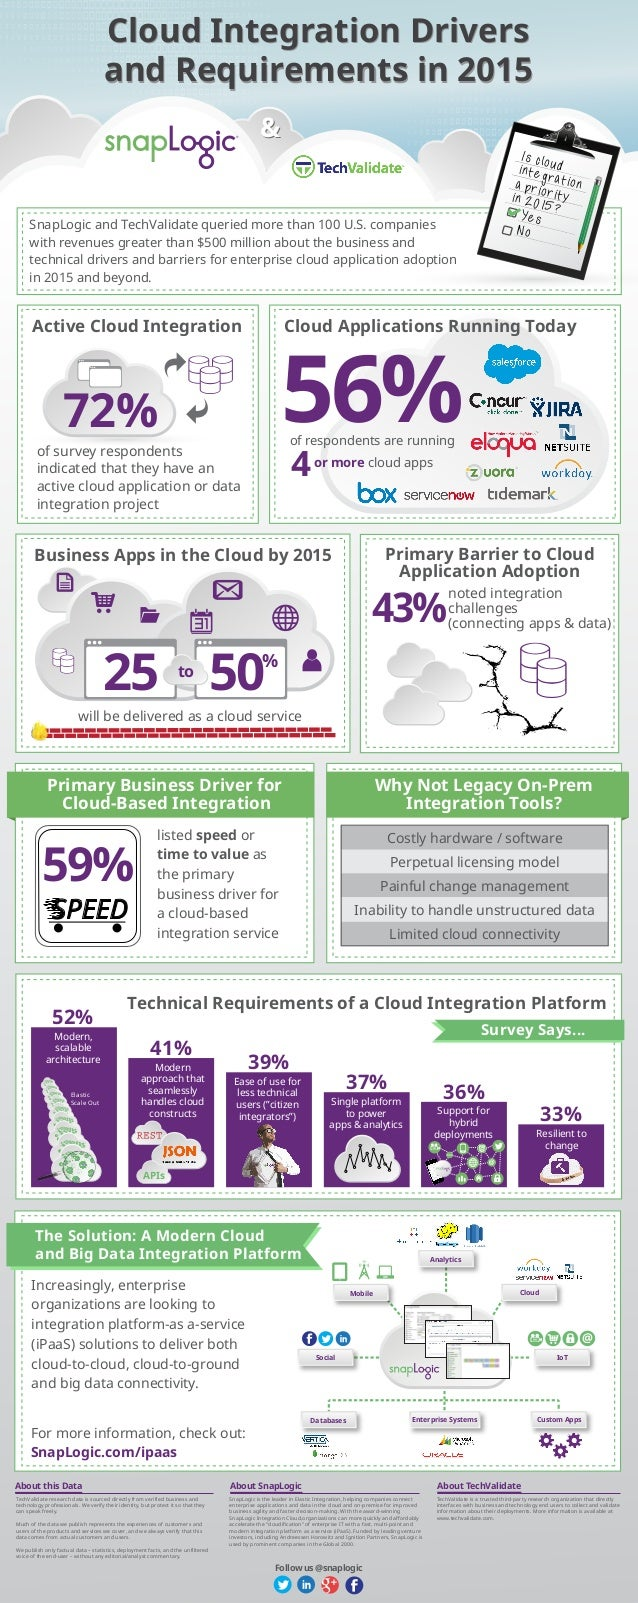 && Cloud Integration Drivers and Requirements in 2015 Cloud Integration Drivers and Requirements in 2015 SnapLogic and Tec...